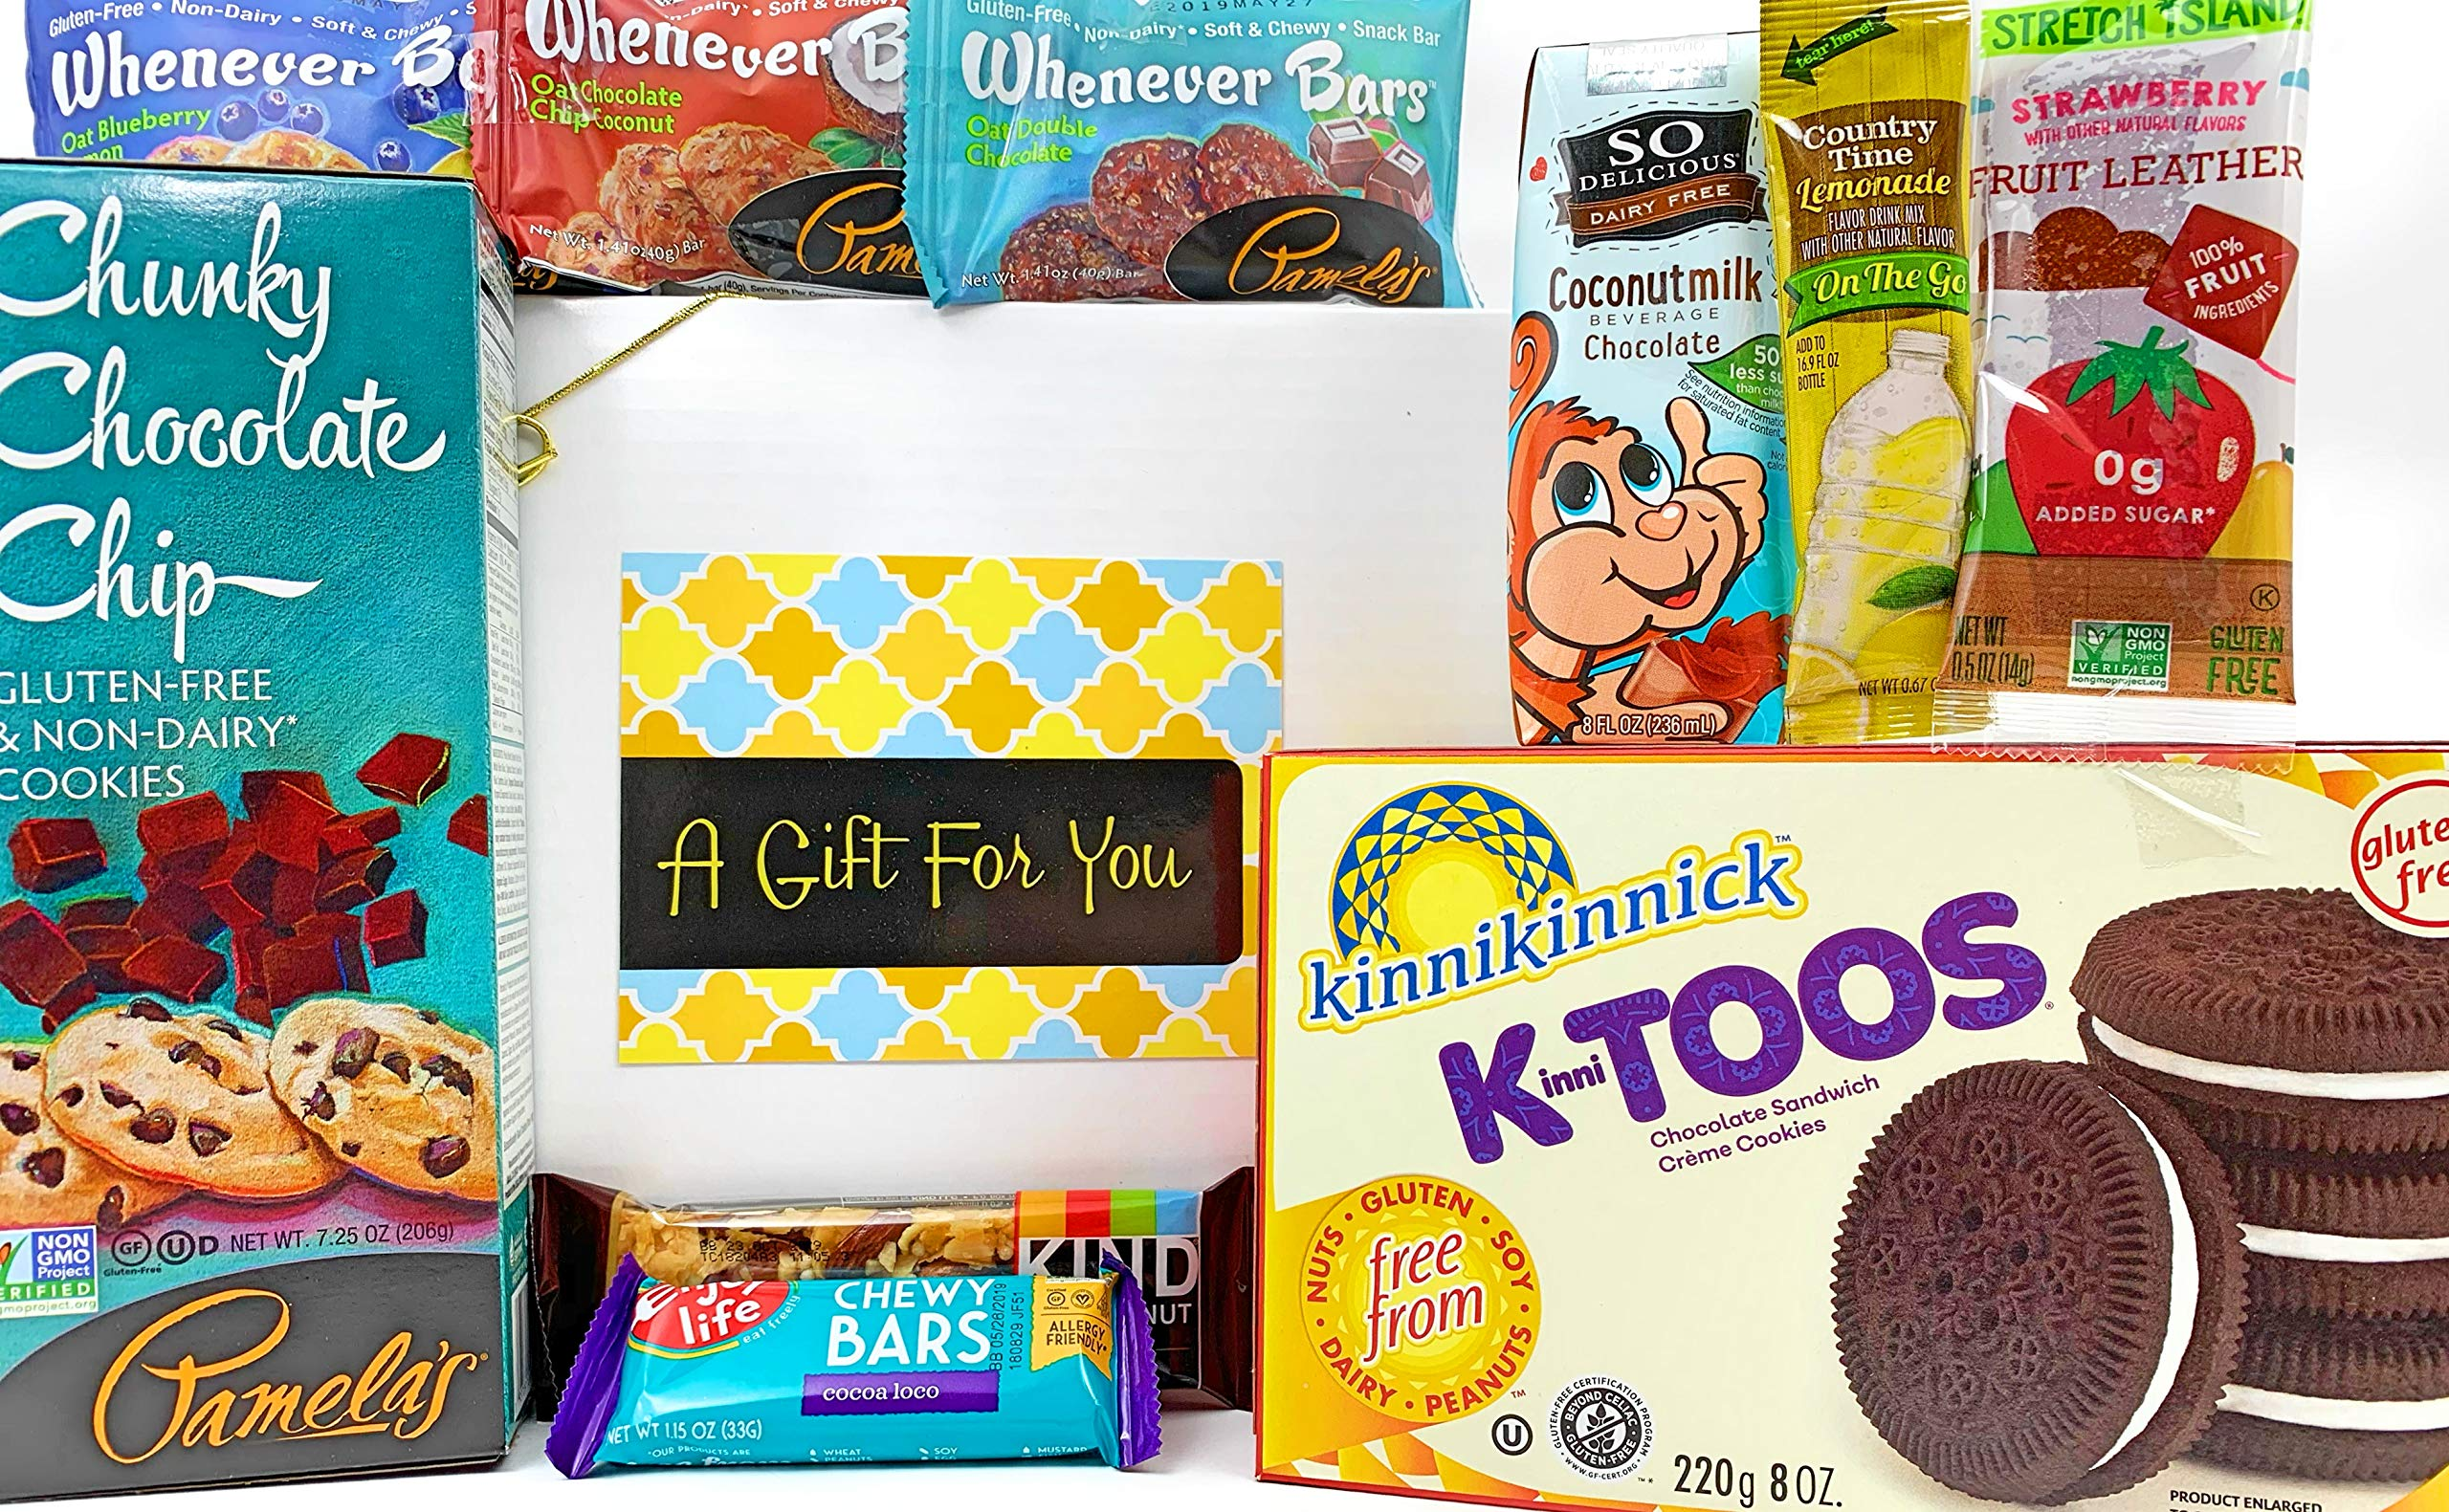 Gluten Free Dairy Free Prime Gift Box Basket - Yummy Treats - Almost 2.5 Pounds - Birthday College Military Care Package Get Well Christmas Valentine's Easter Mother's Day Father's Day by Specialty Gift Boxes